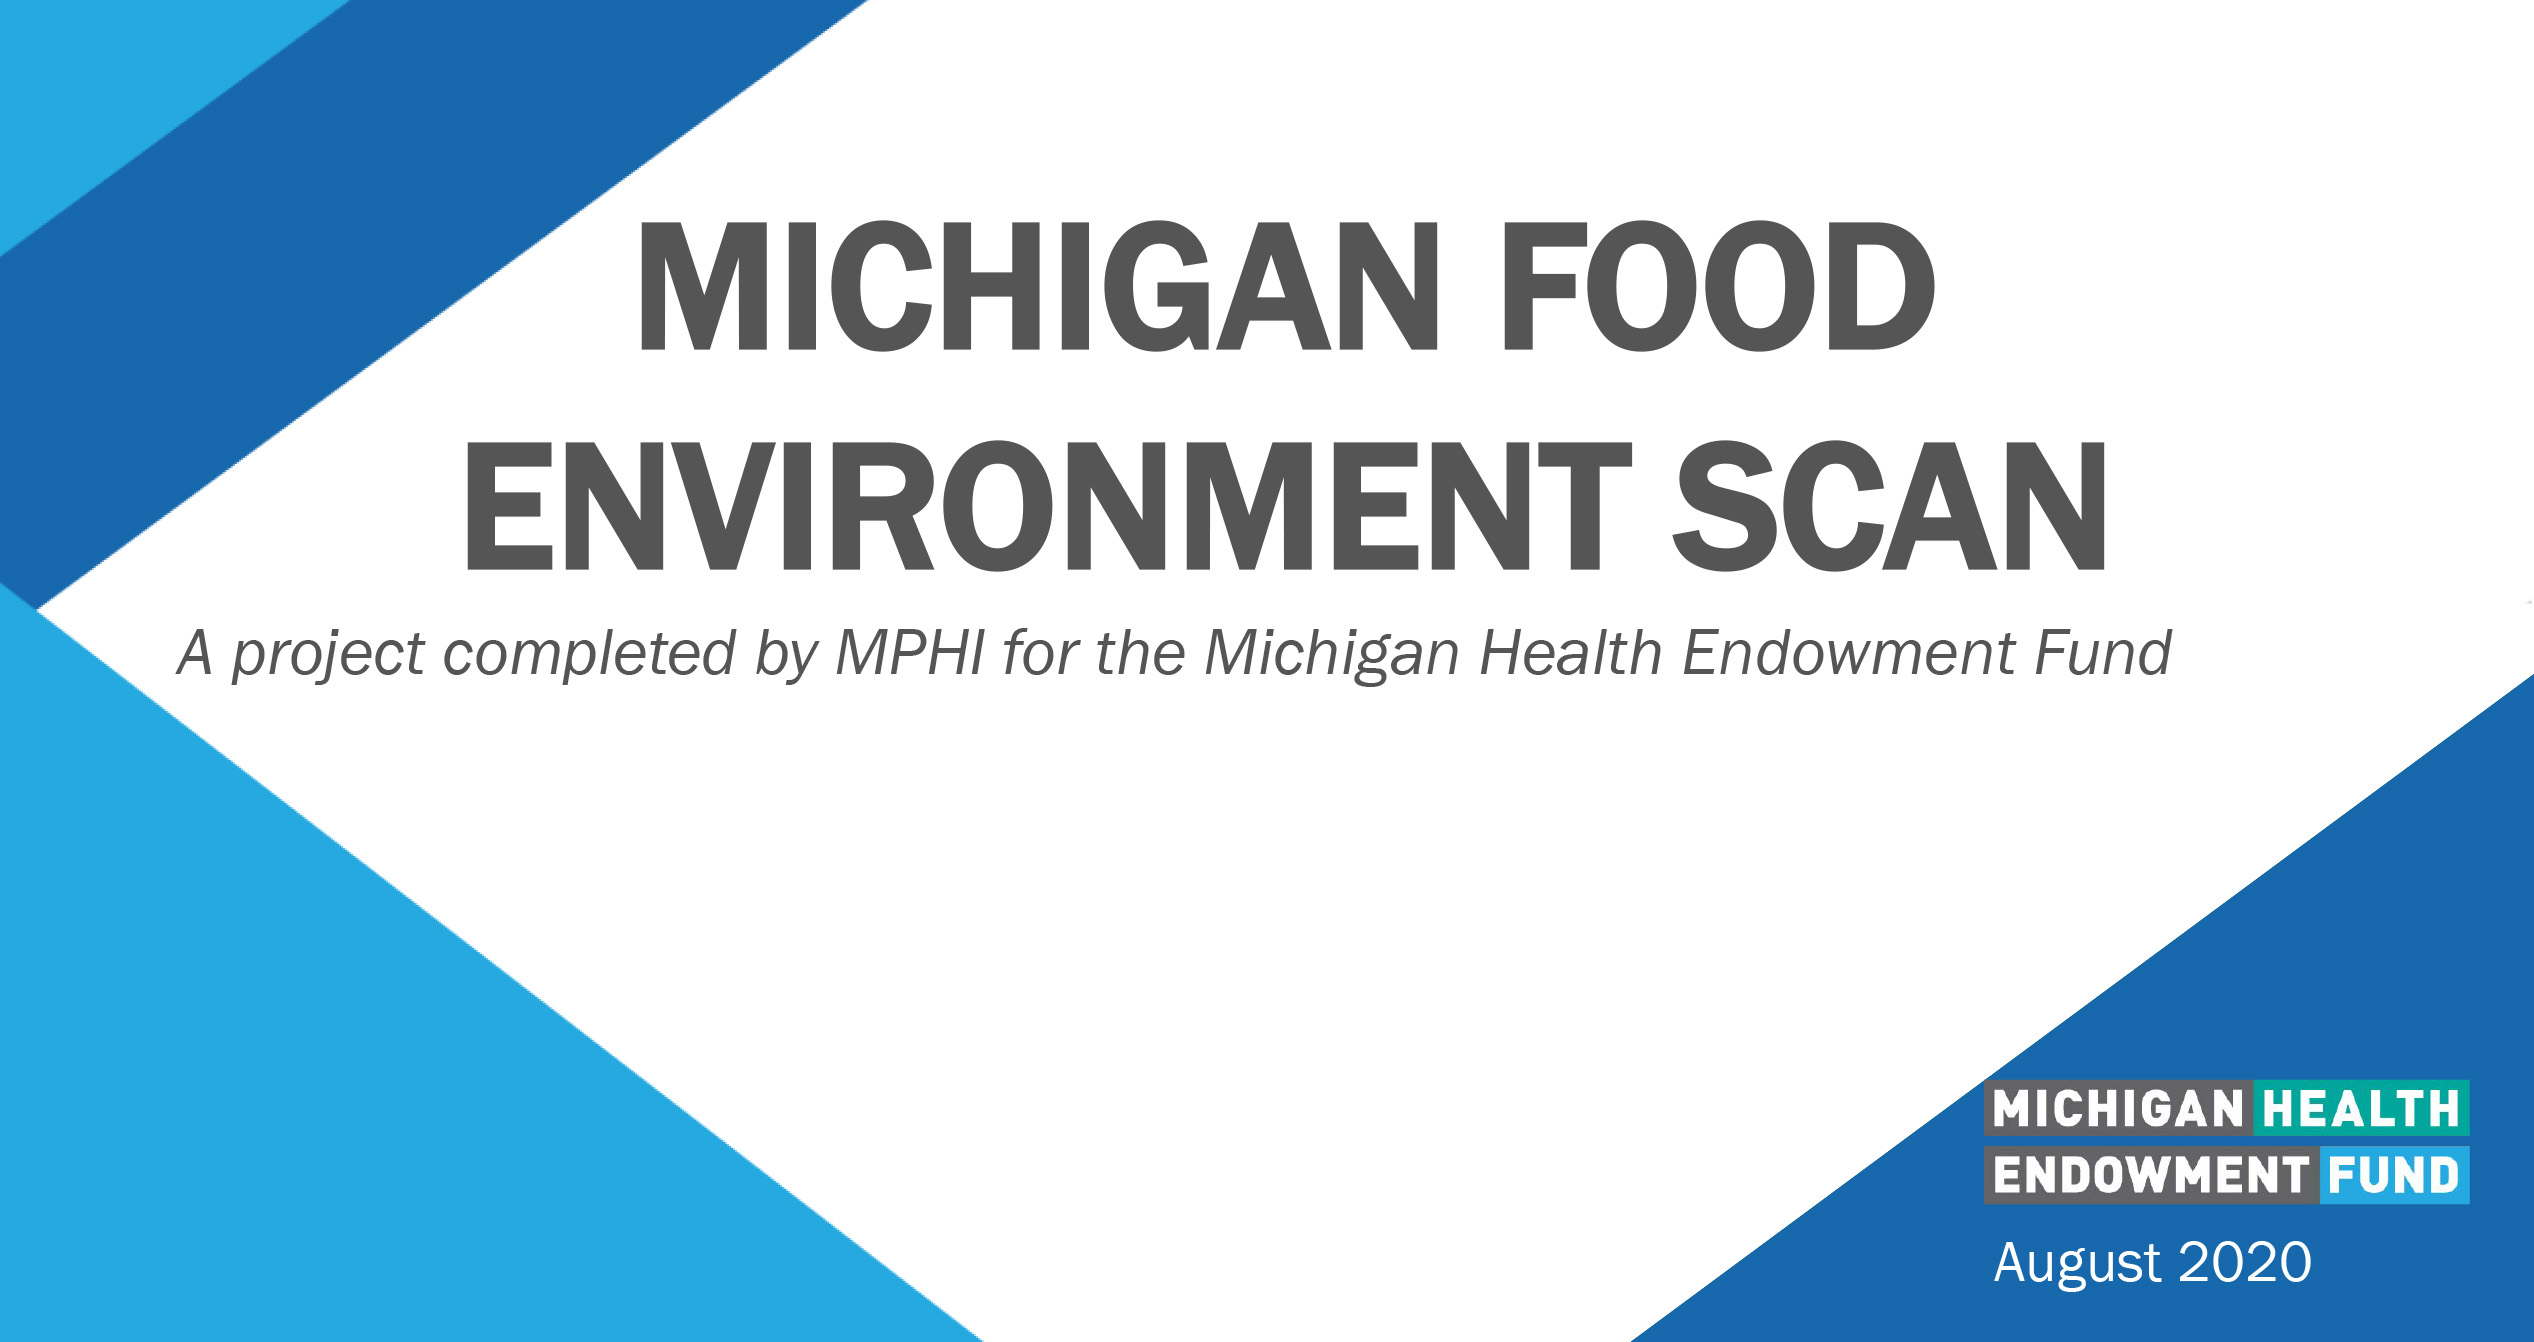 Michigan food environment scan report cover image